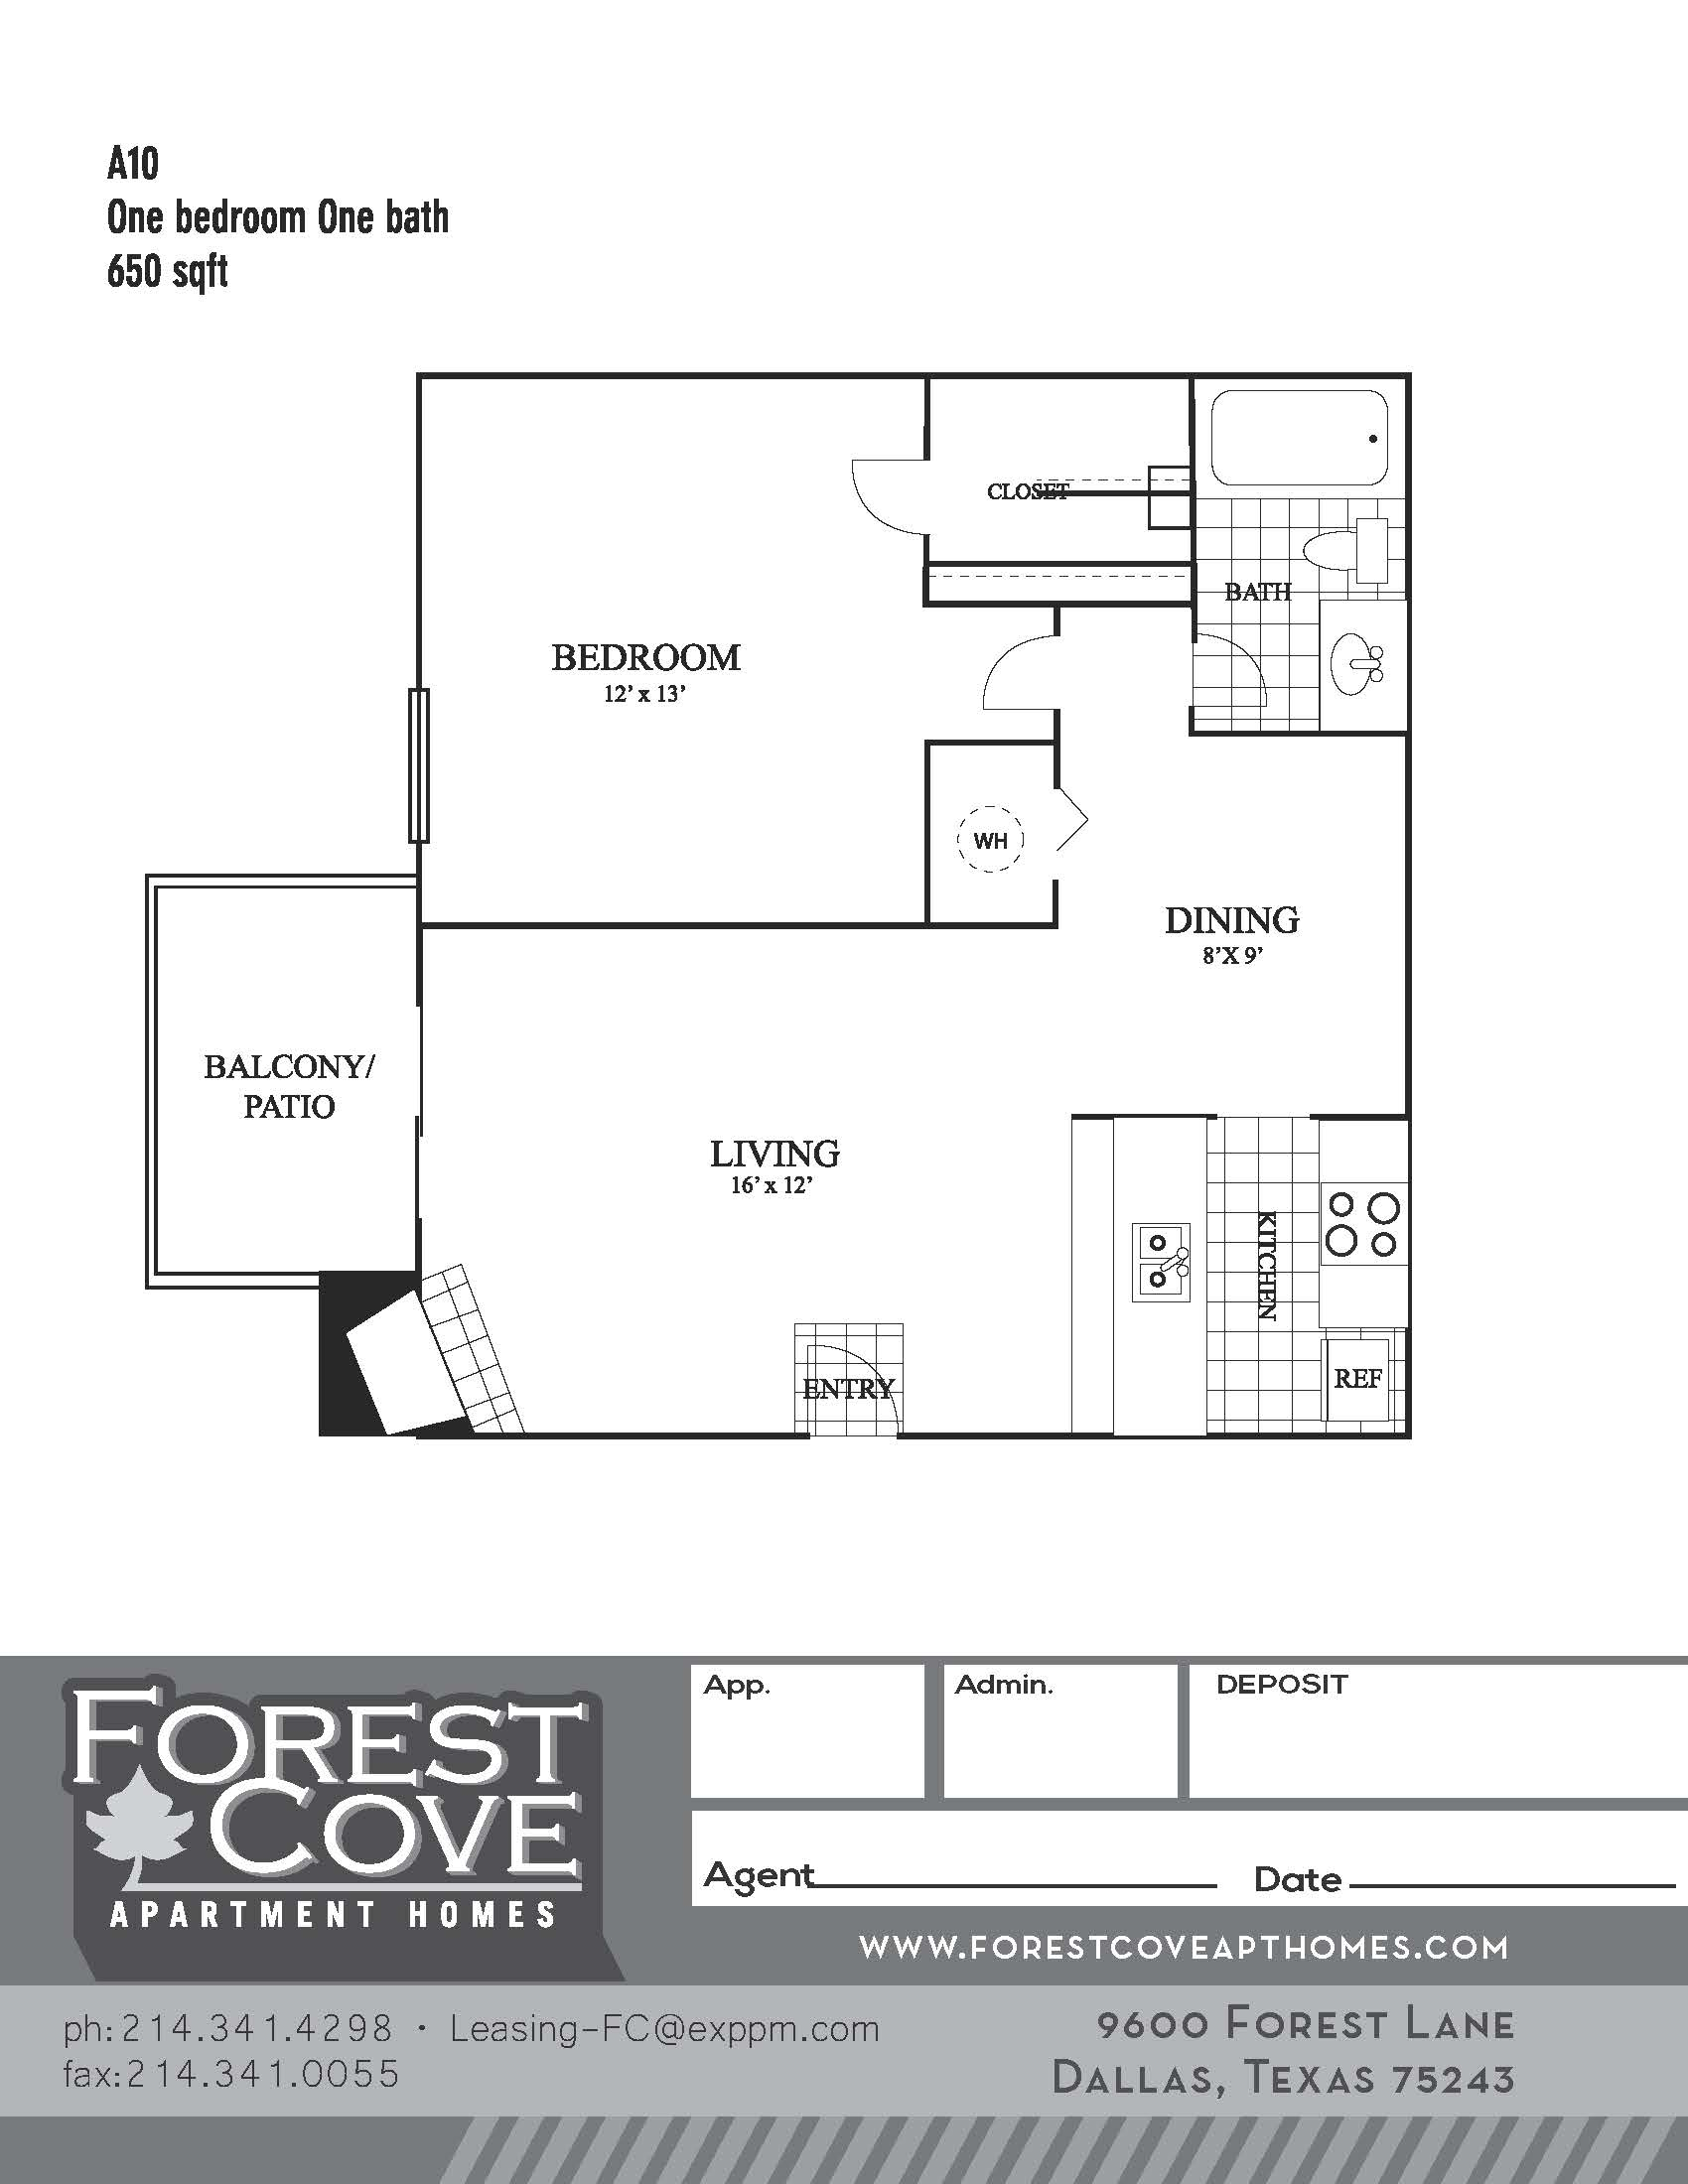 Forest Cove Apartments - Floorplan - A10